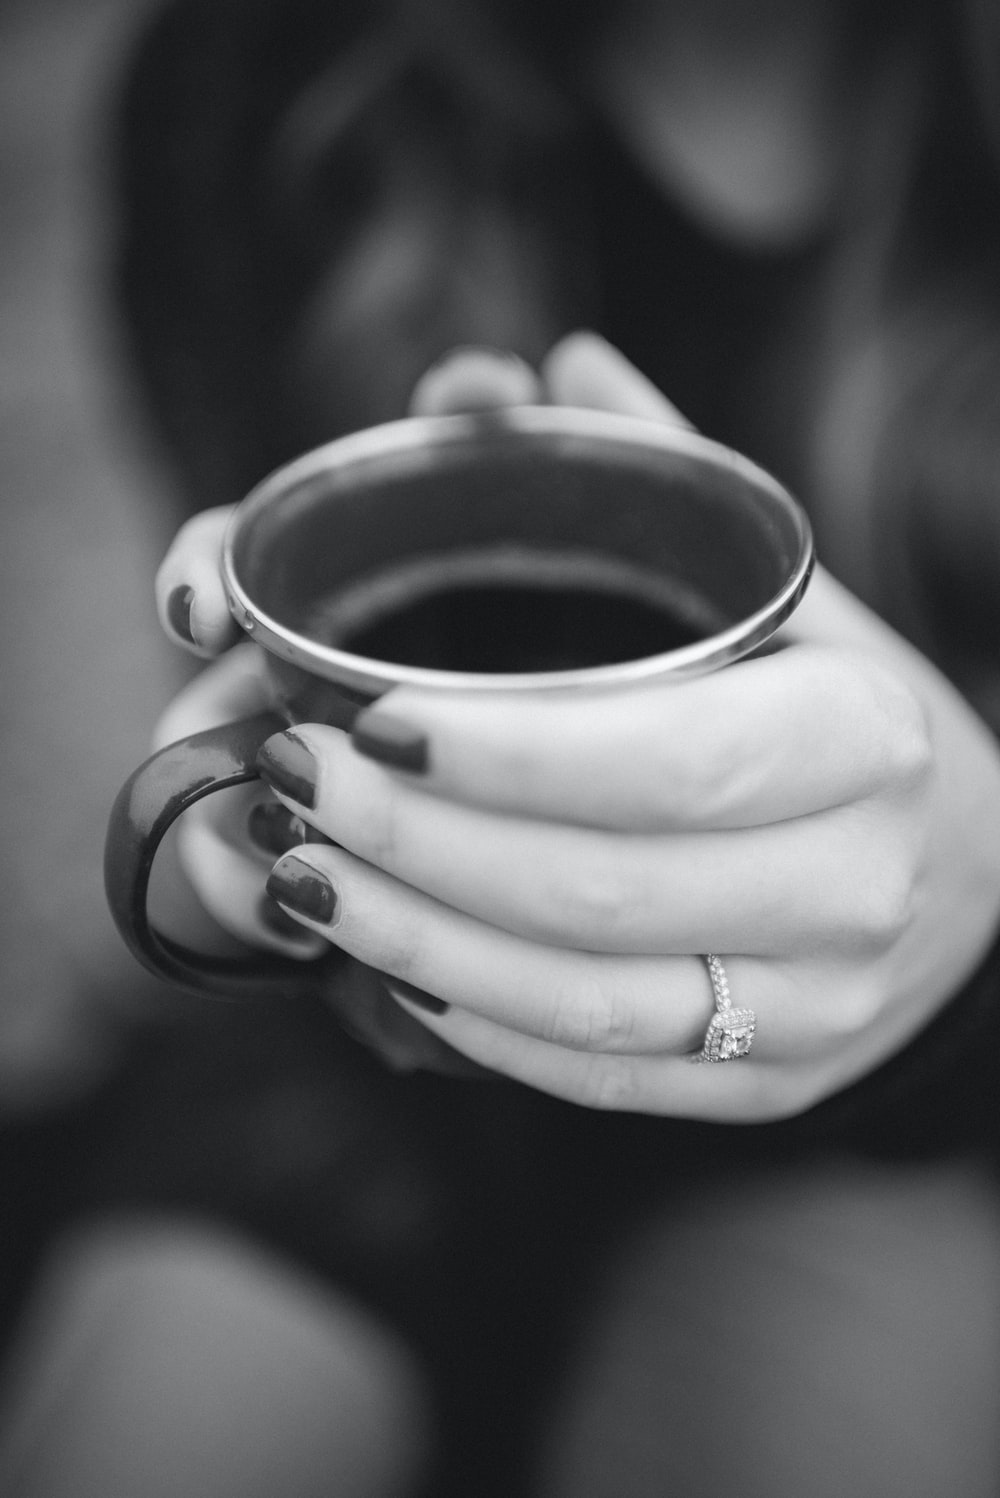 grayscale photography of person holding mug